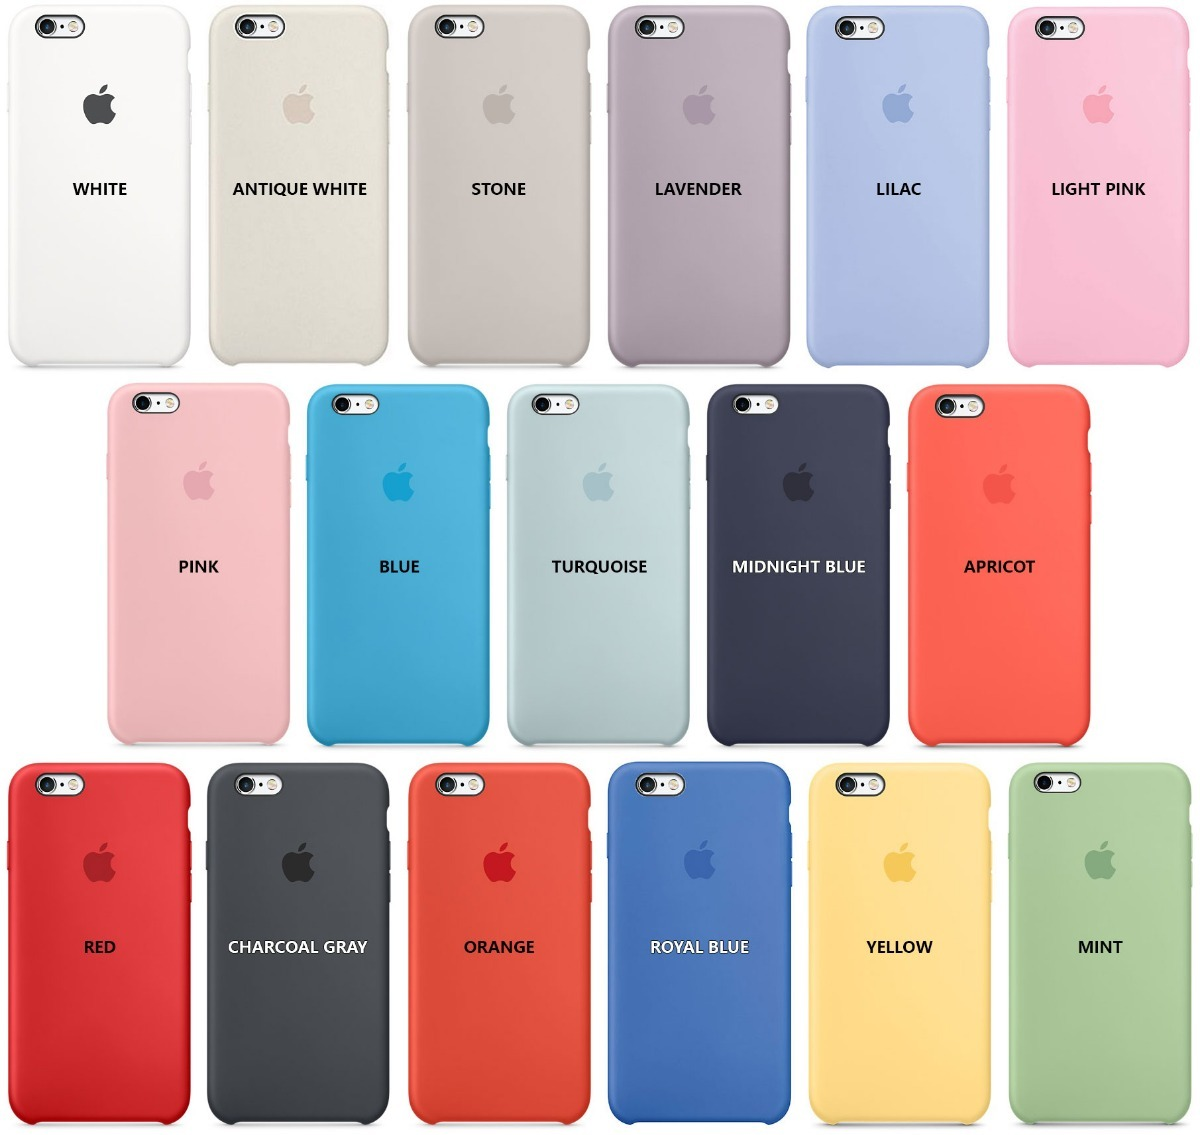 e5c47c143f9 funda iphone 5 5s se apple original silicona soft recoleta. Cargando zoom.